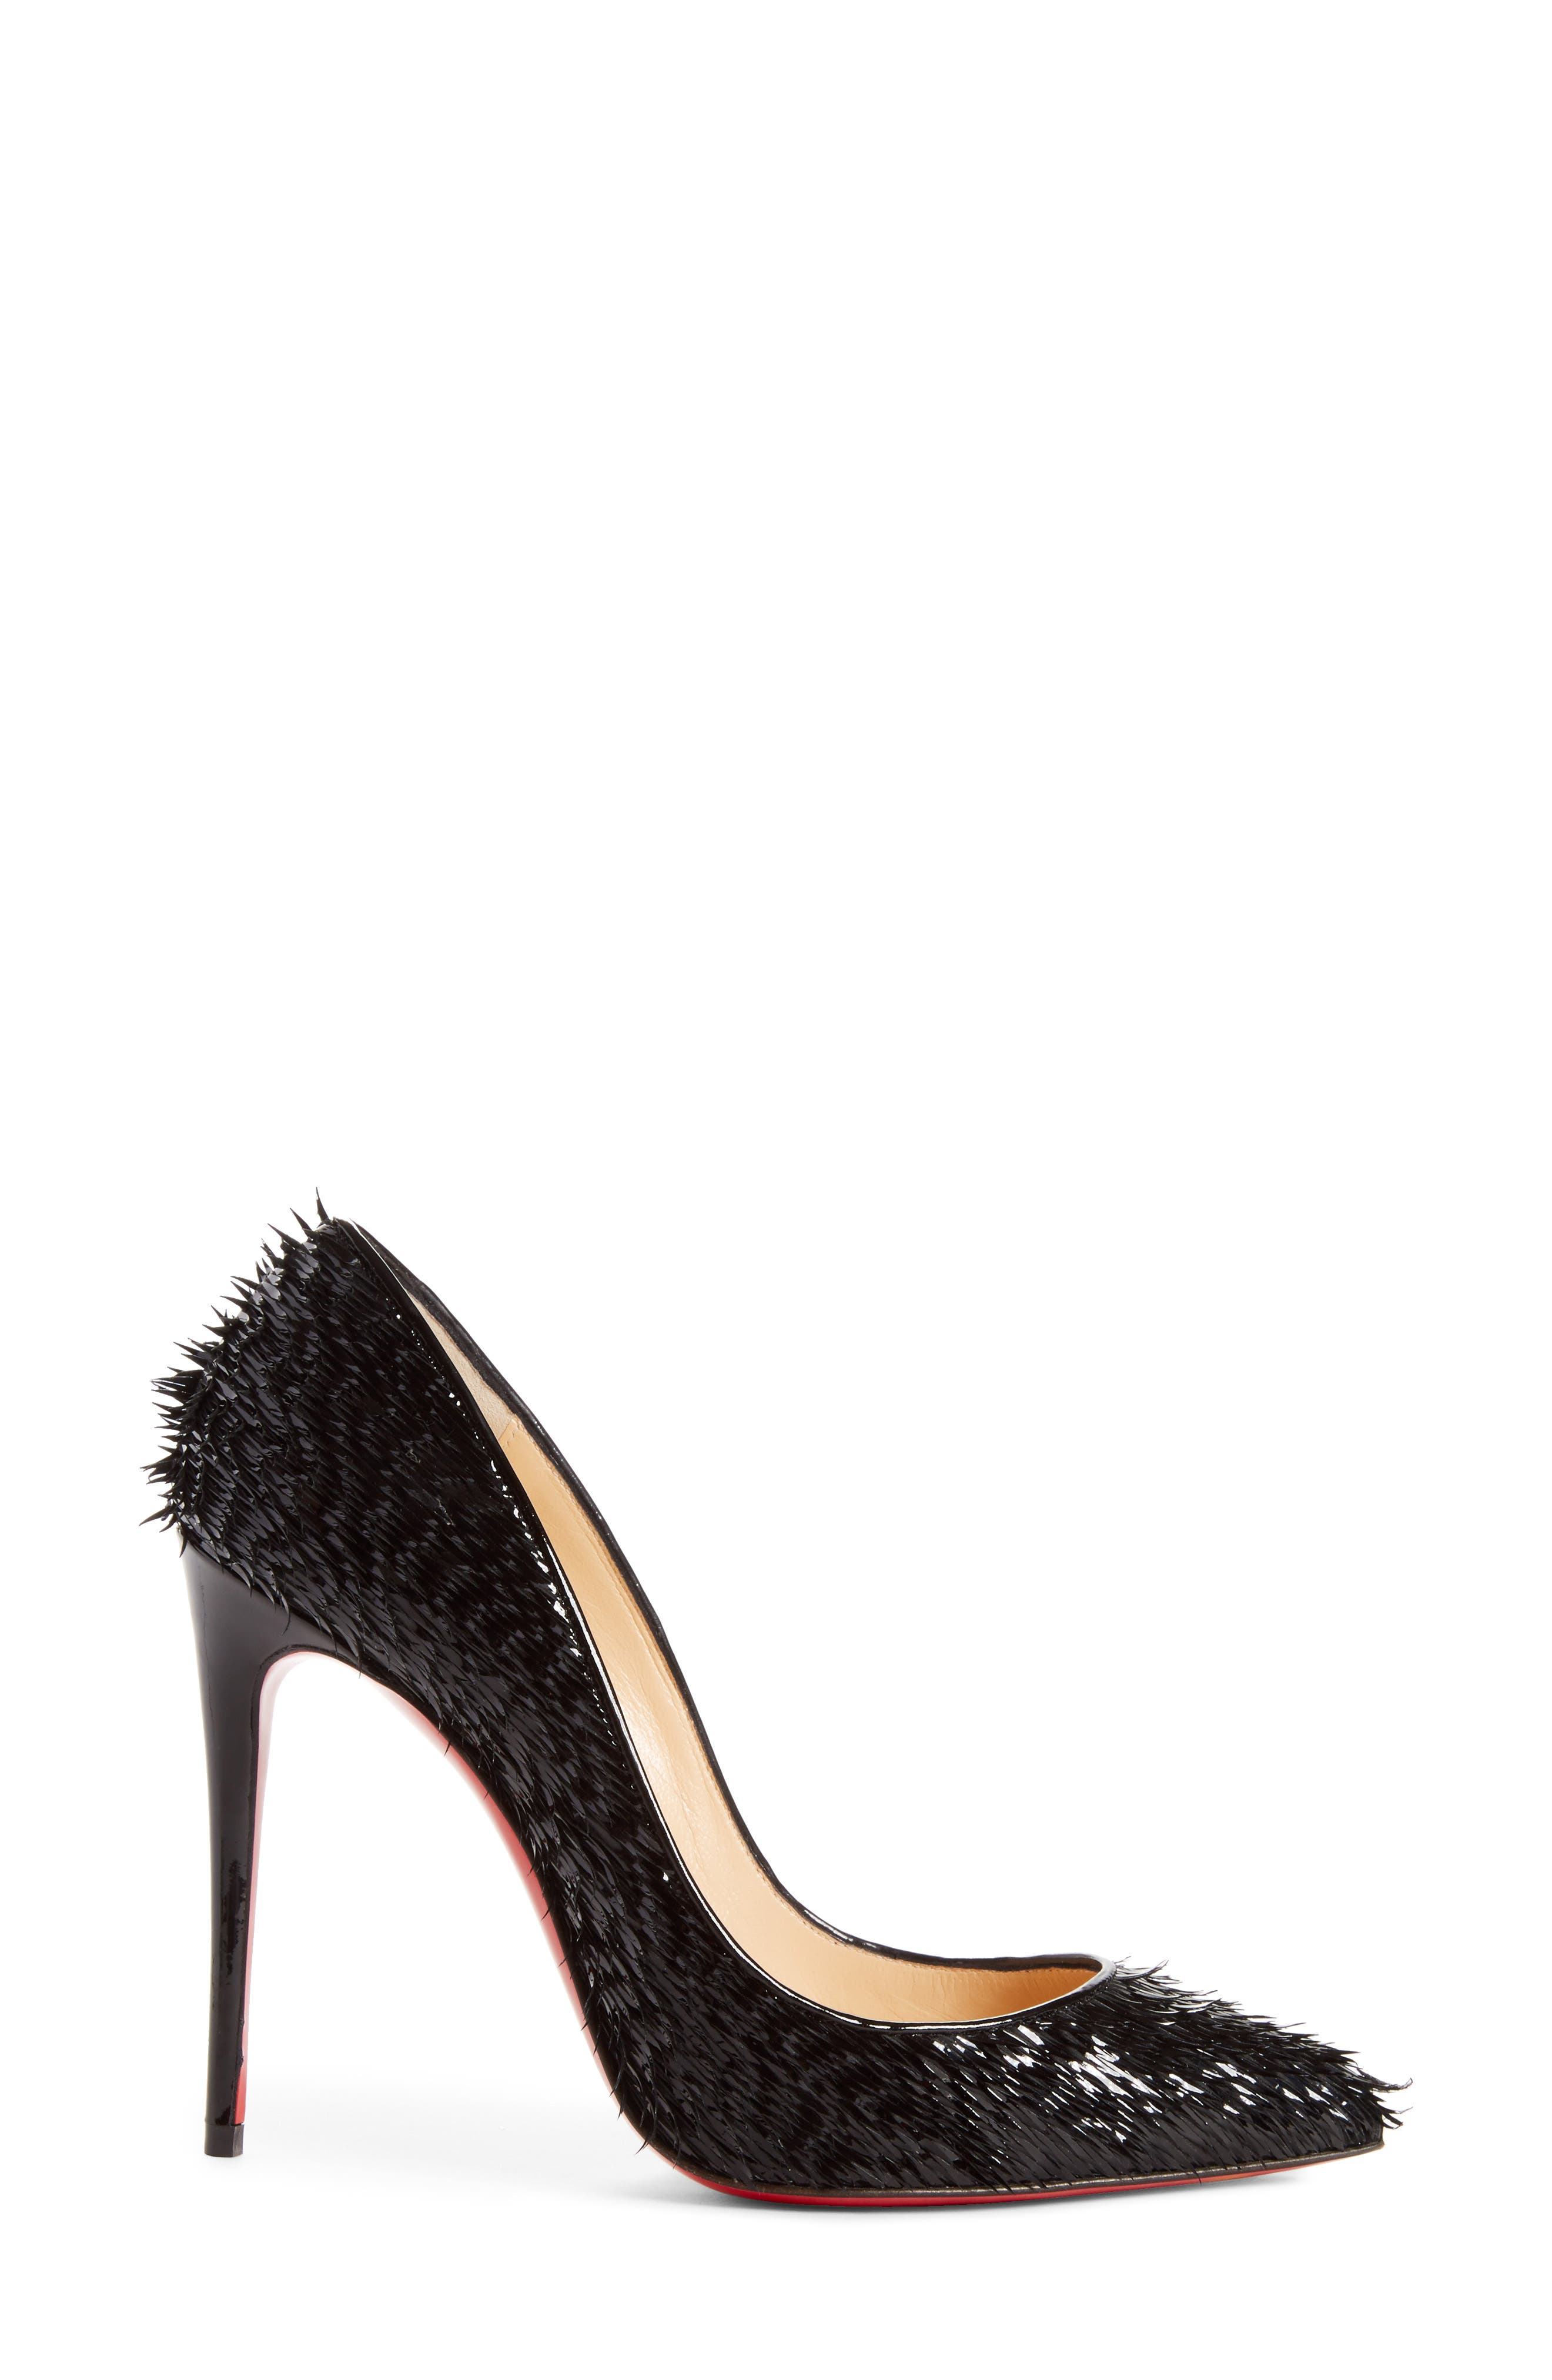 Pigalle Follies Pointy Toe Pump,                             Alternate thumbnail 3, color,                             Black